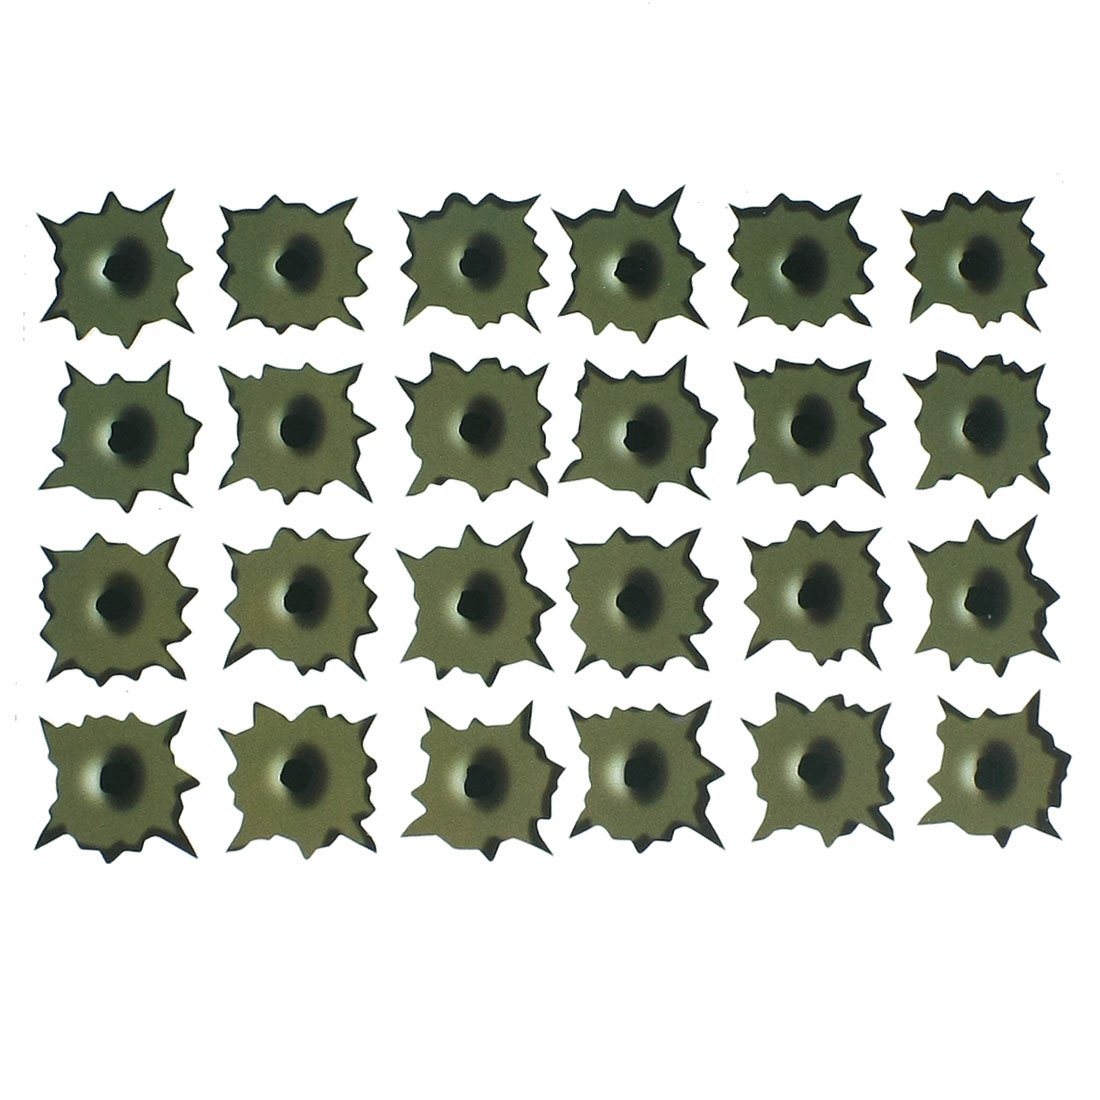 Army Green Paper Made Seismic 24 Holes Car Decal Sticker